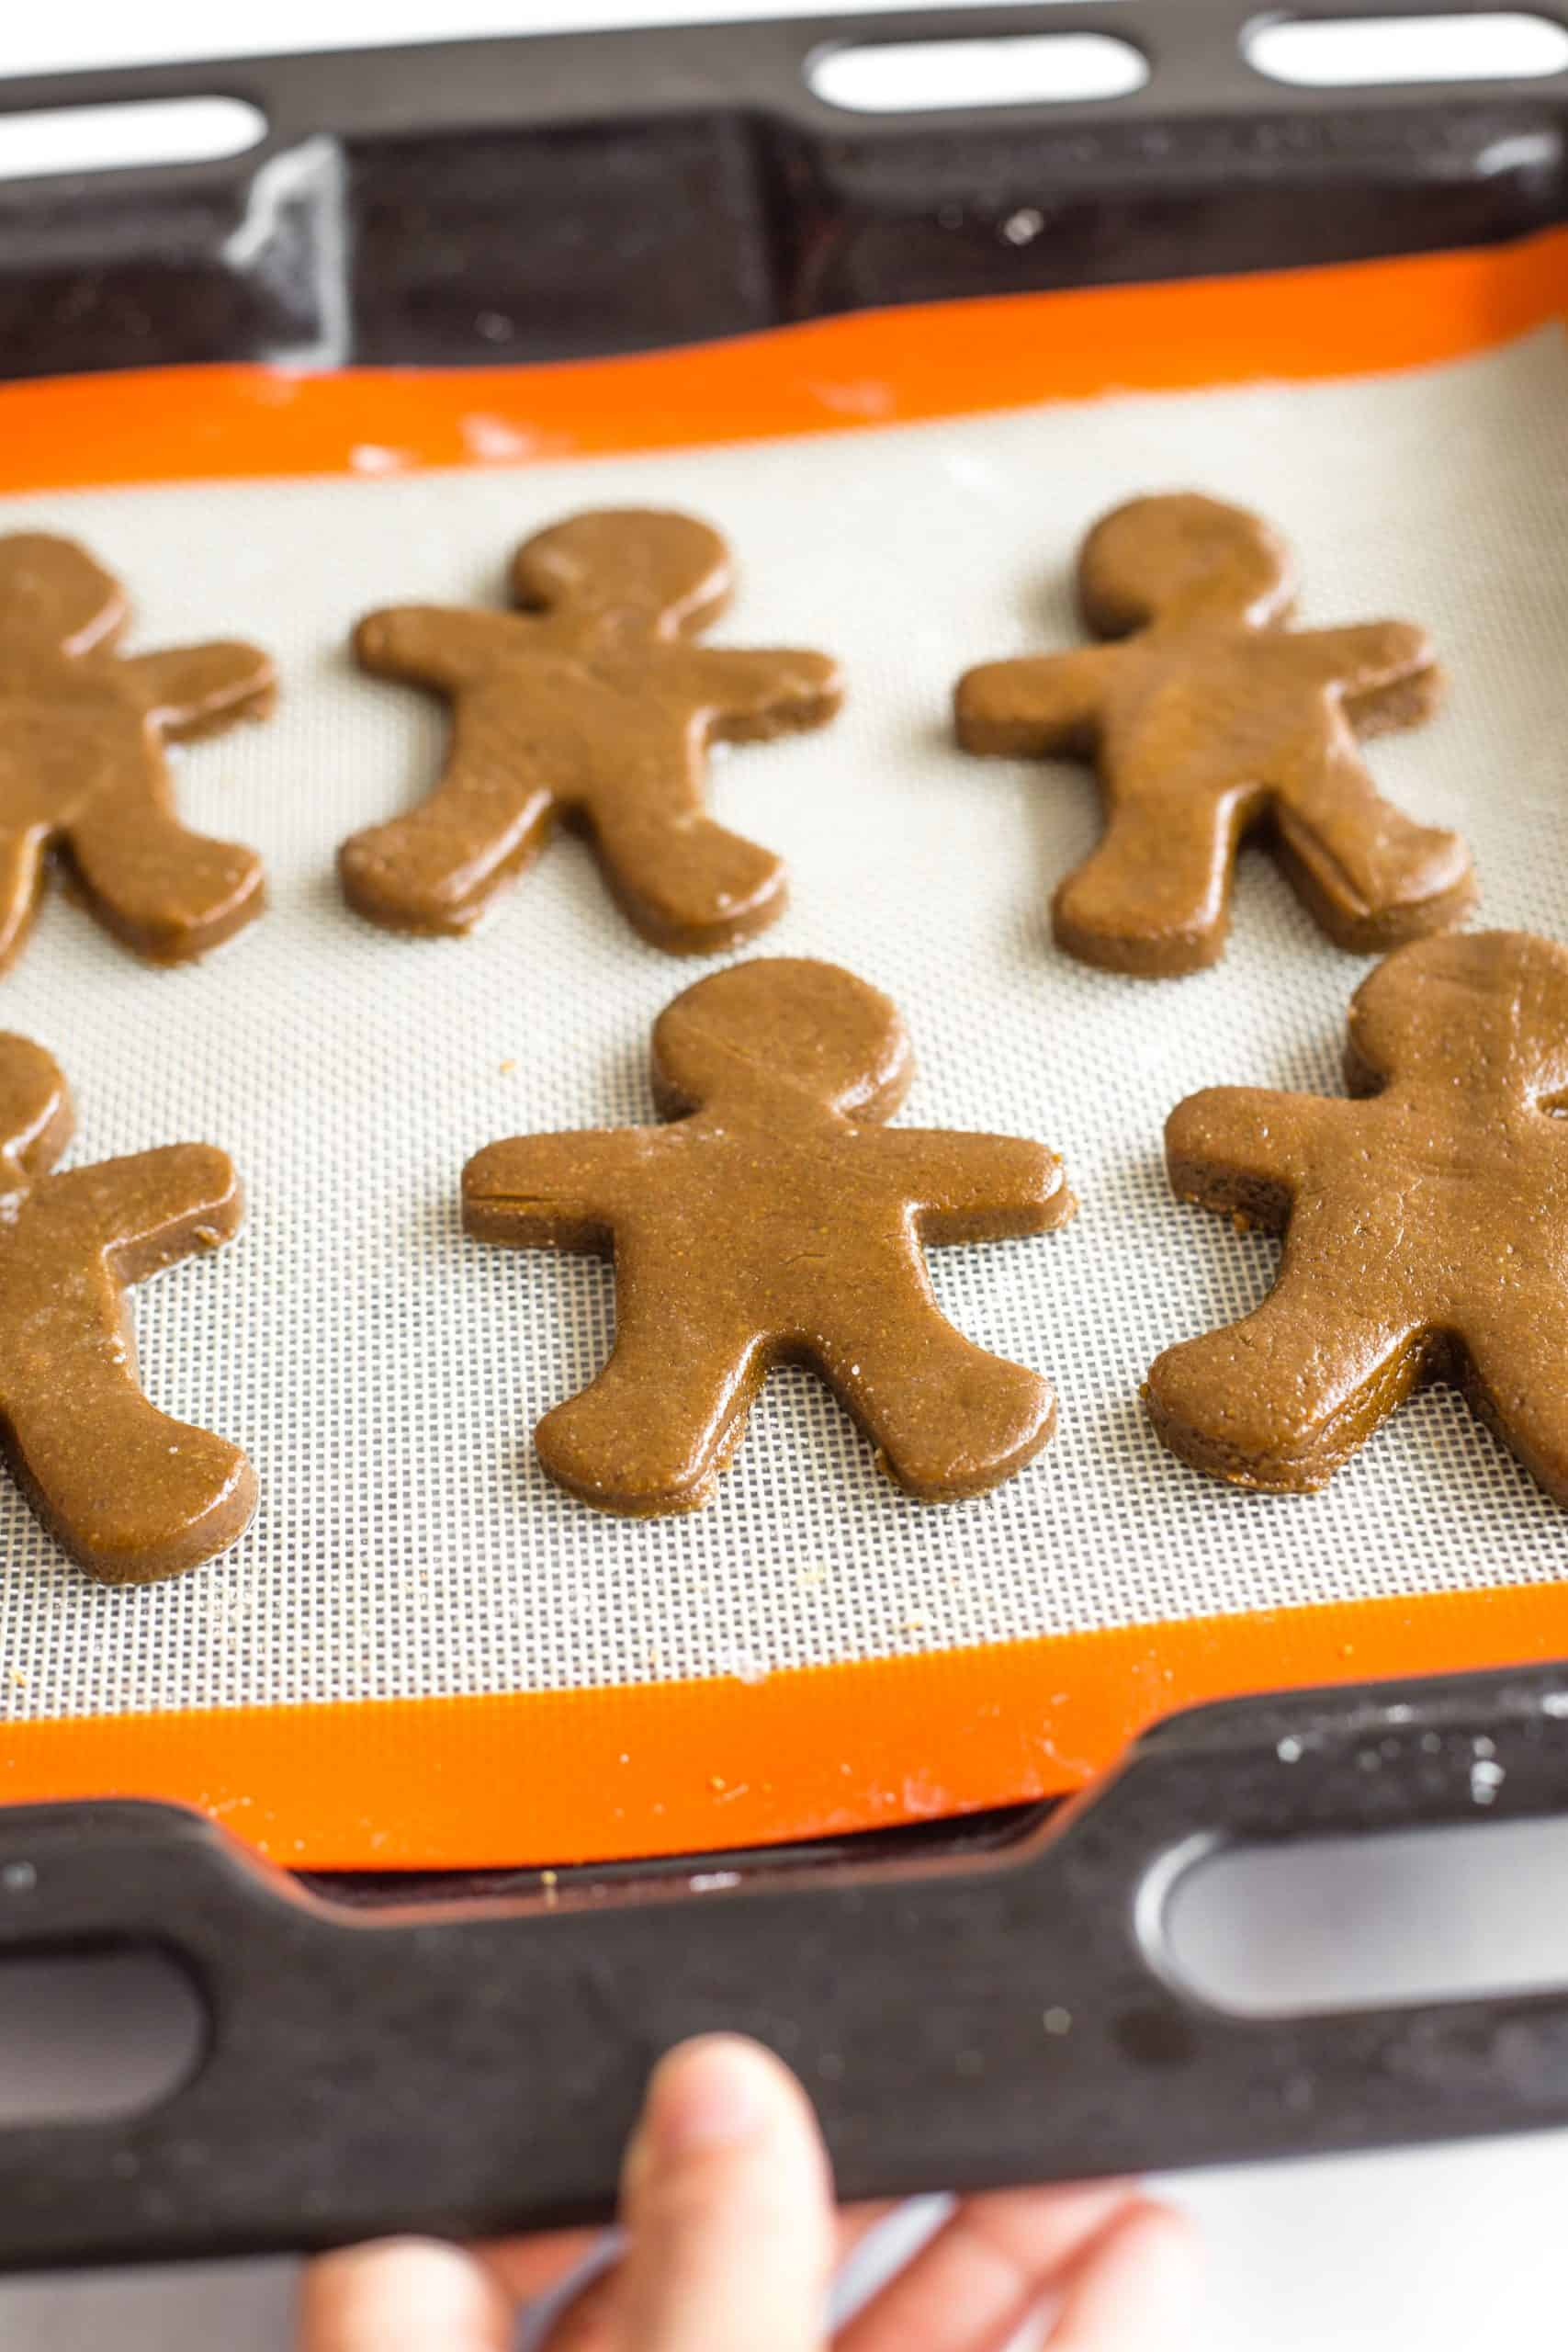 Gingerbread man dough pieces on silpat-lined baking sheet.